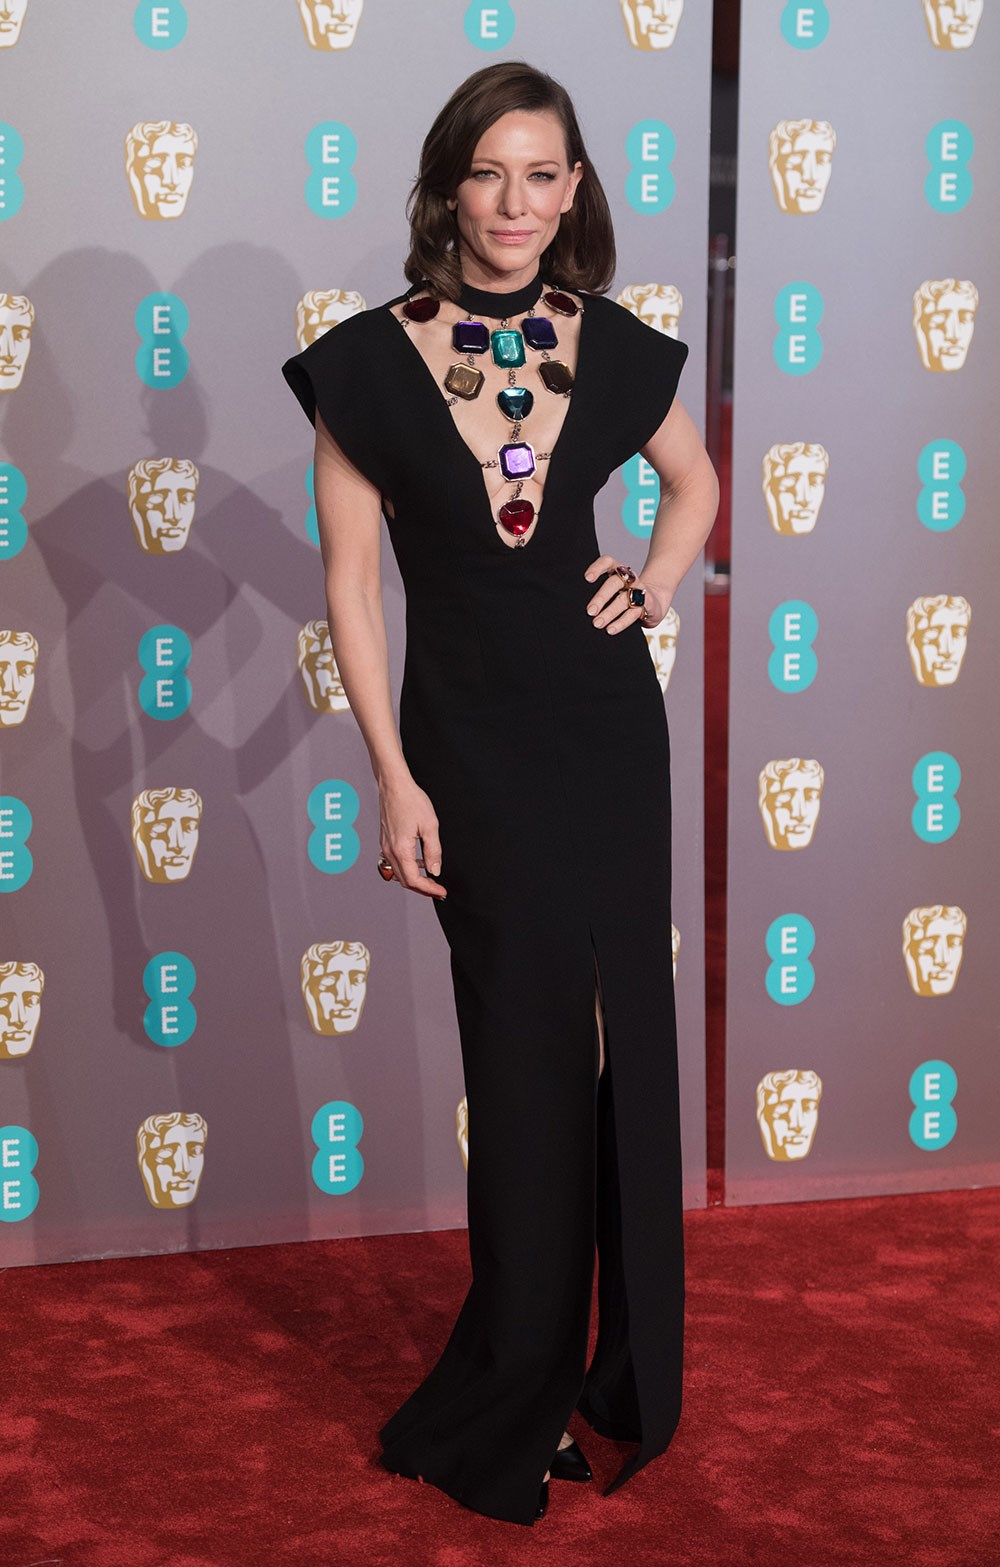 Cate Blanchett at the BAFTAs 2019 Red Carpet - Photos at